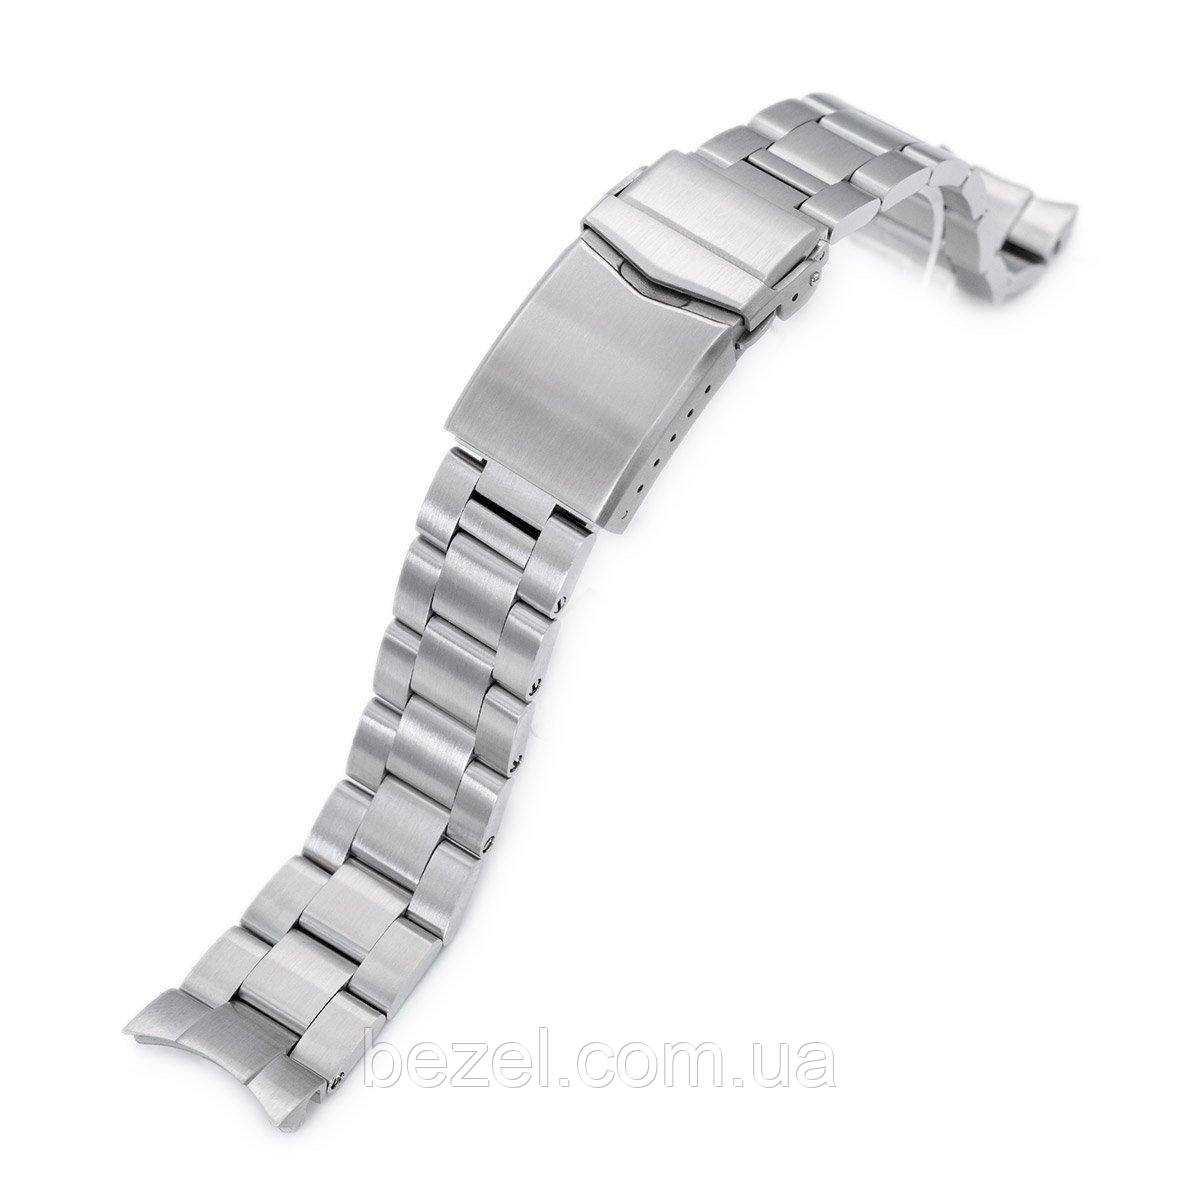 20mm Super 3D Oyster 316L Stainless Steel Watch Bracelet for Seiko Mechanical Automatic SARB035, V-Clasp, Brushed